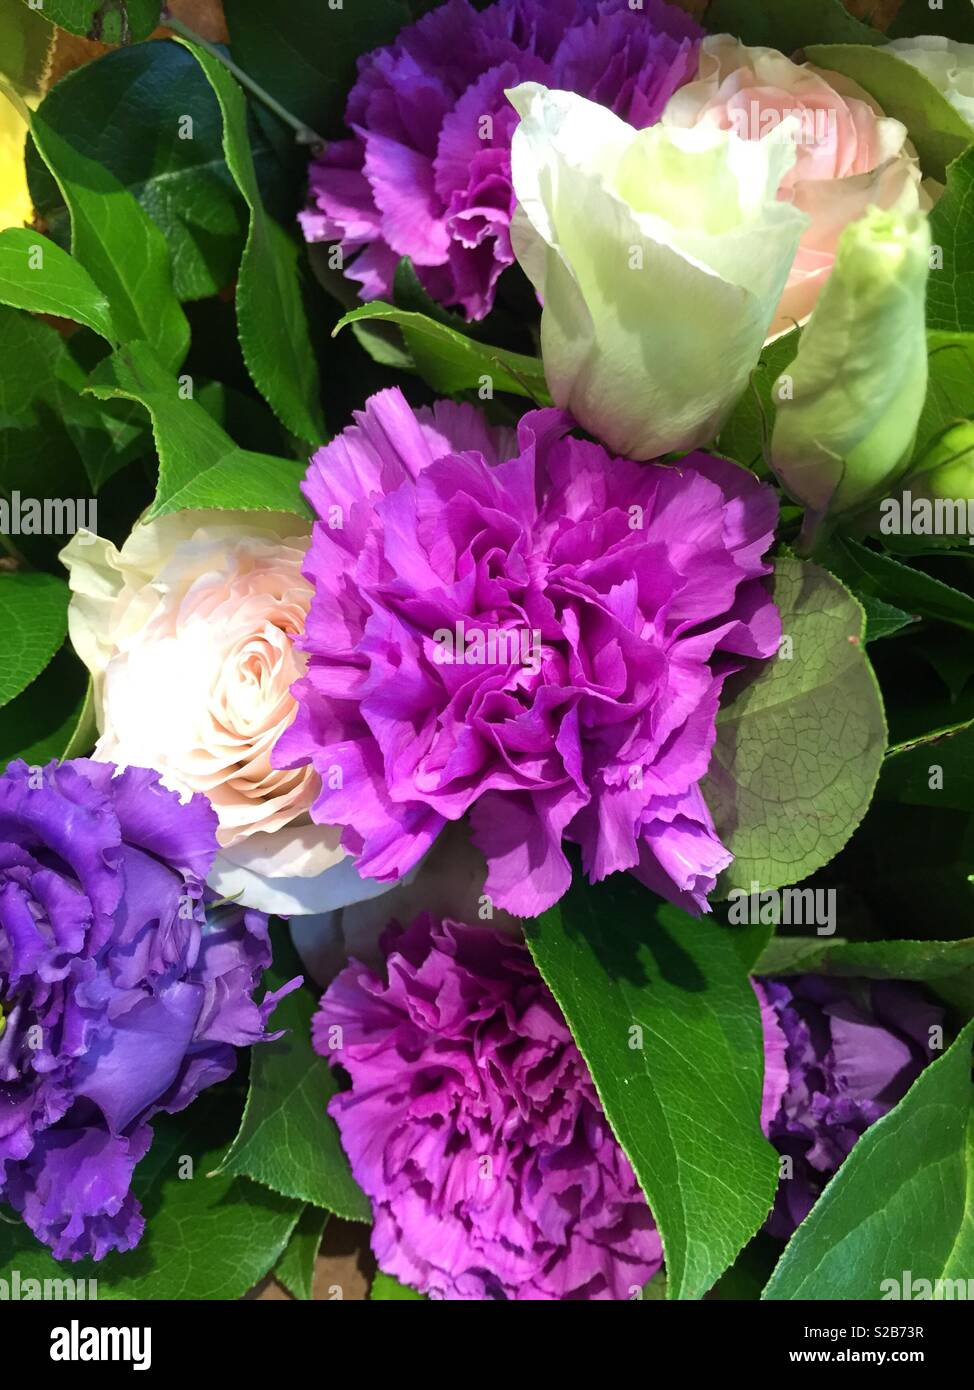 Lisianthus blooms in a bouquet at a florist, New York City, USA - Stock Image